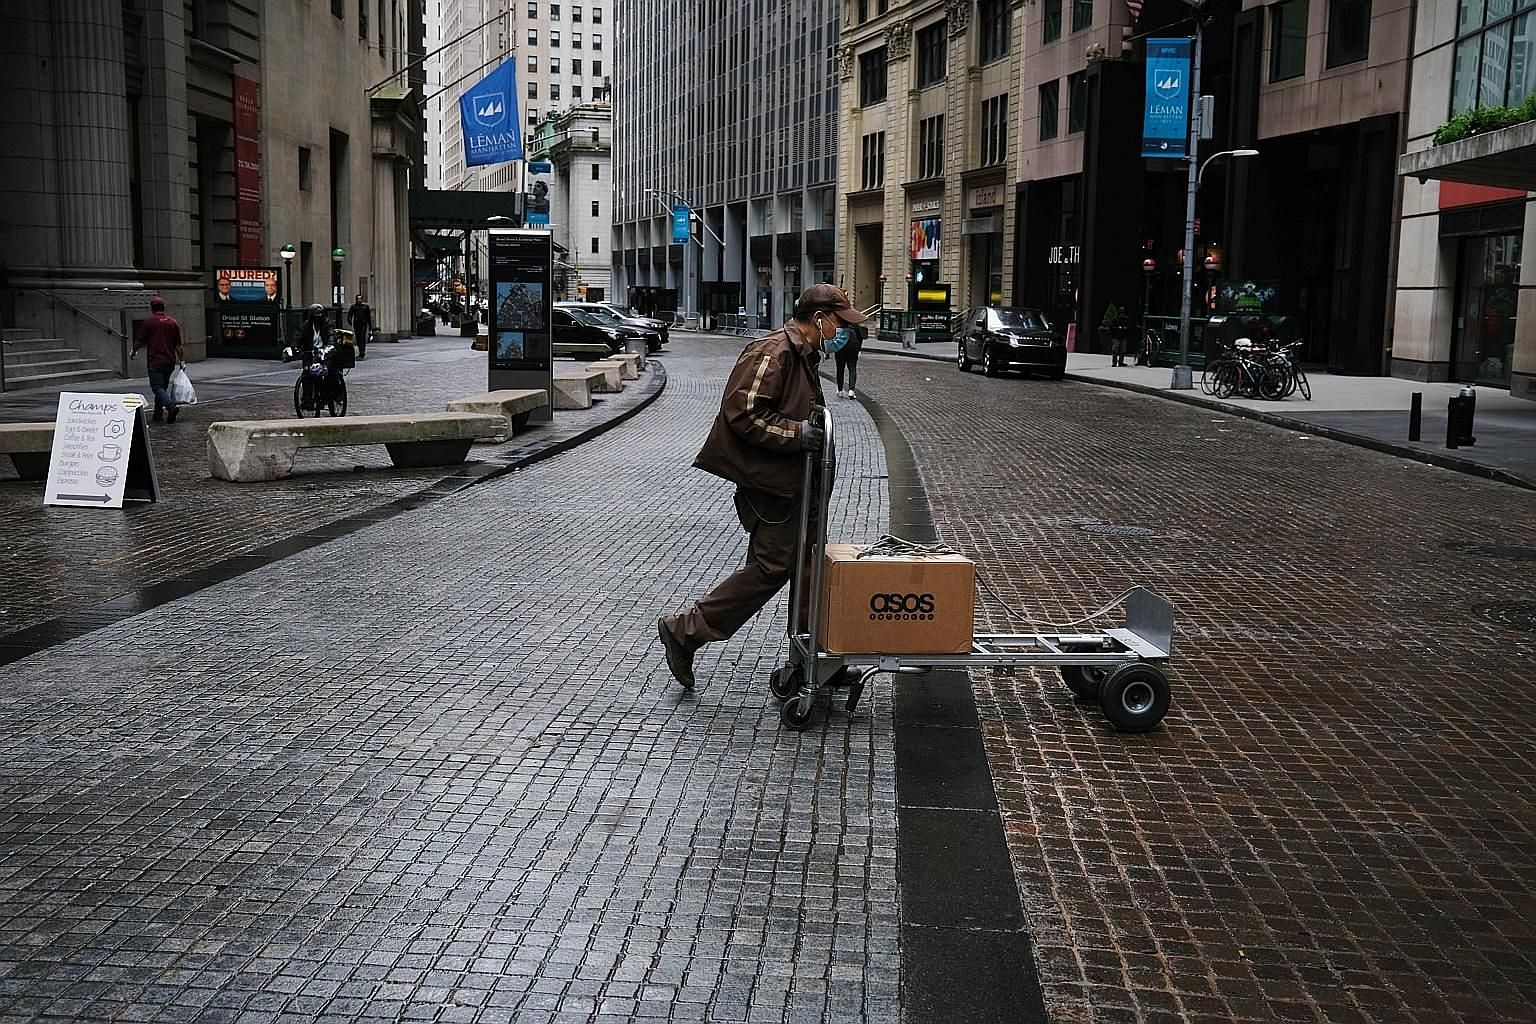 A view on Friday of the financial district of New York City, which is under lockdown during the coronavirus pandemic. The United States, the largest economy in the world, has been hit hard by Covid-19, with the unemployment rate climbing to 14.7 per